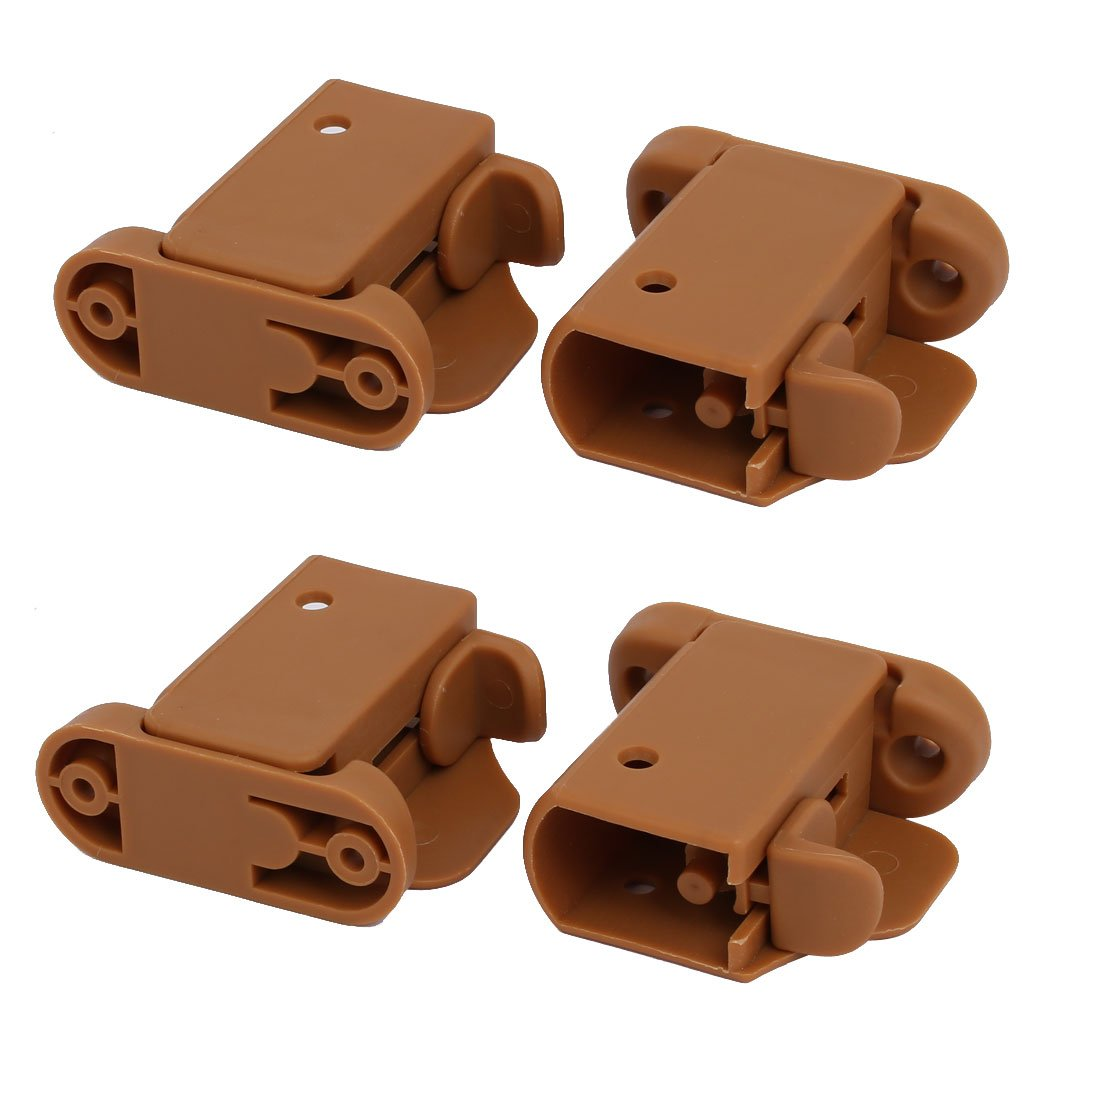 uxcell 21mmx30mm Plastic Left Right Side Guardrail Rail Buckle 2 Sets Brown w Spring